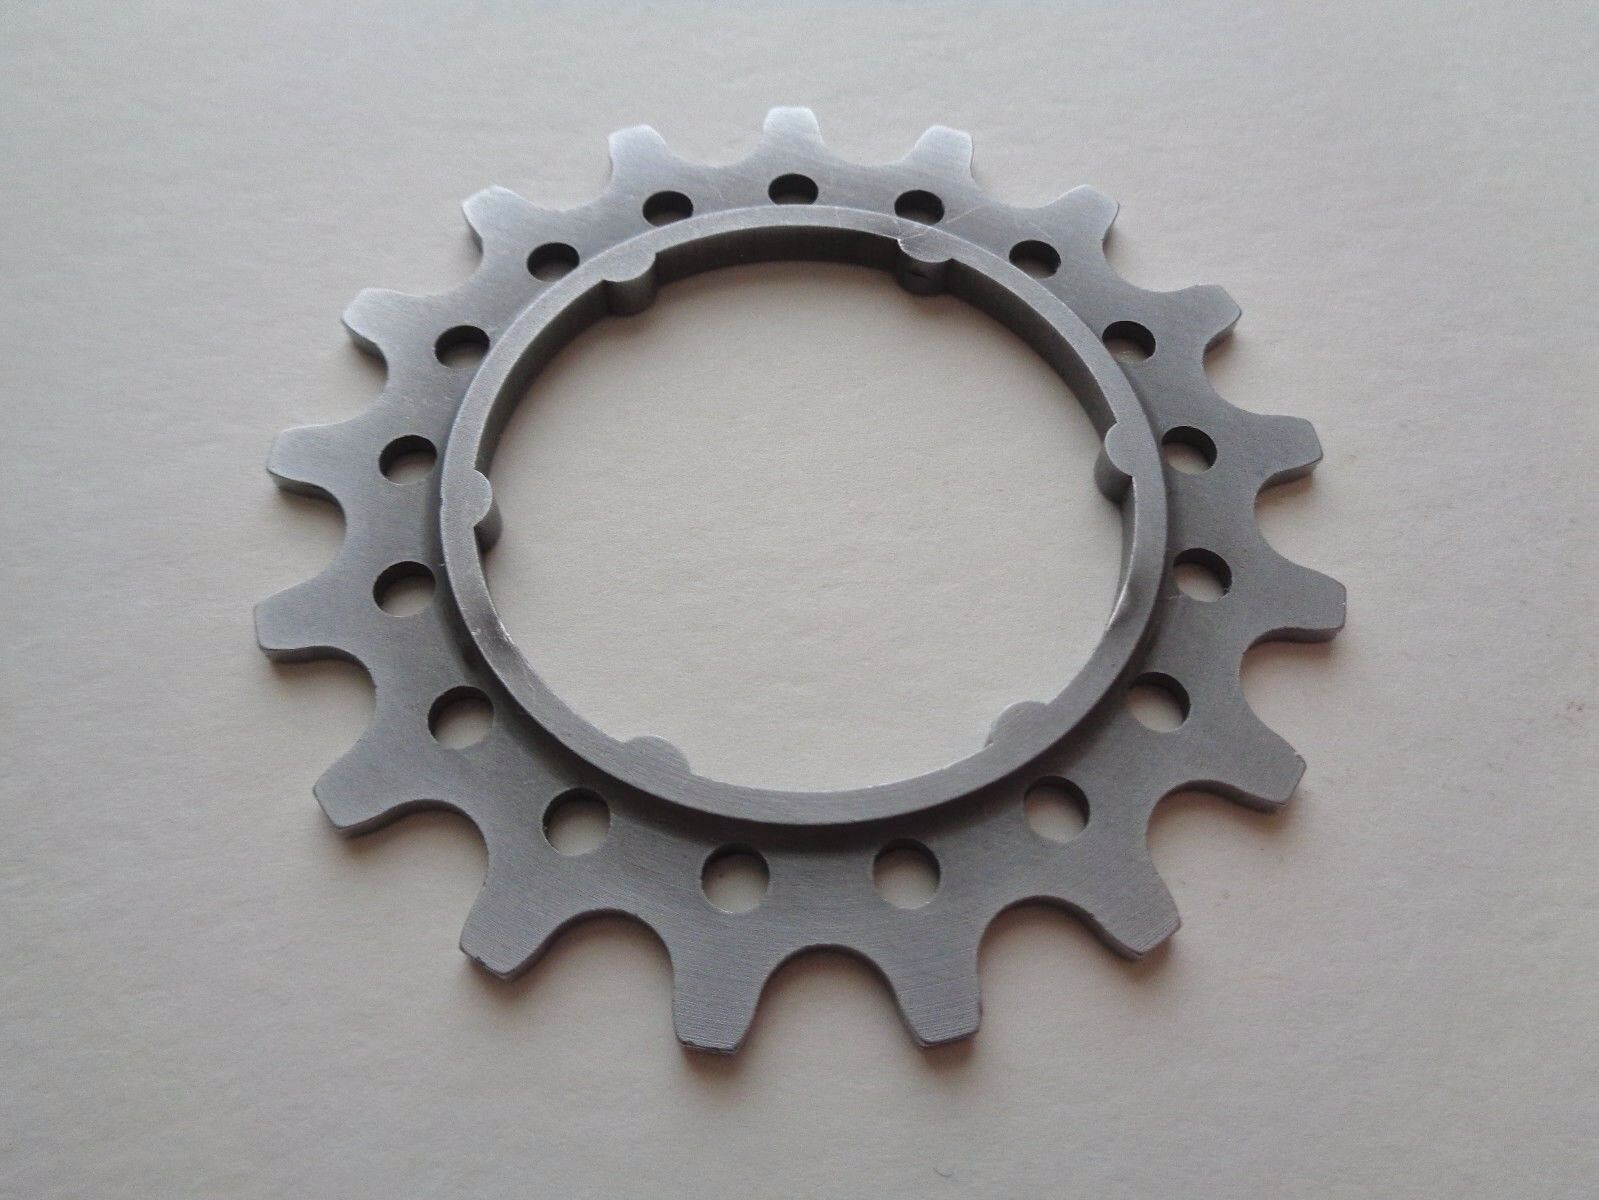 NOS Vintage 1980s Campagnolo N17 Aluminium 17t Italian freewheel  cassette Cog  just for you